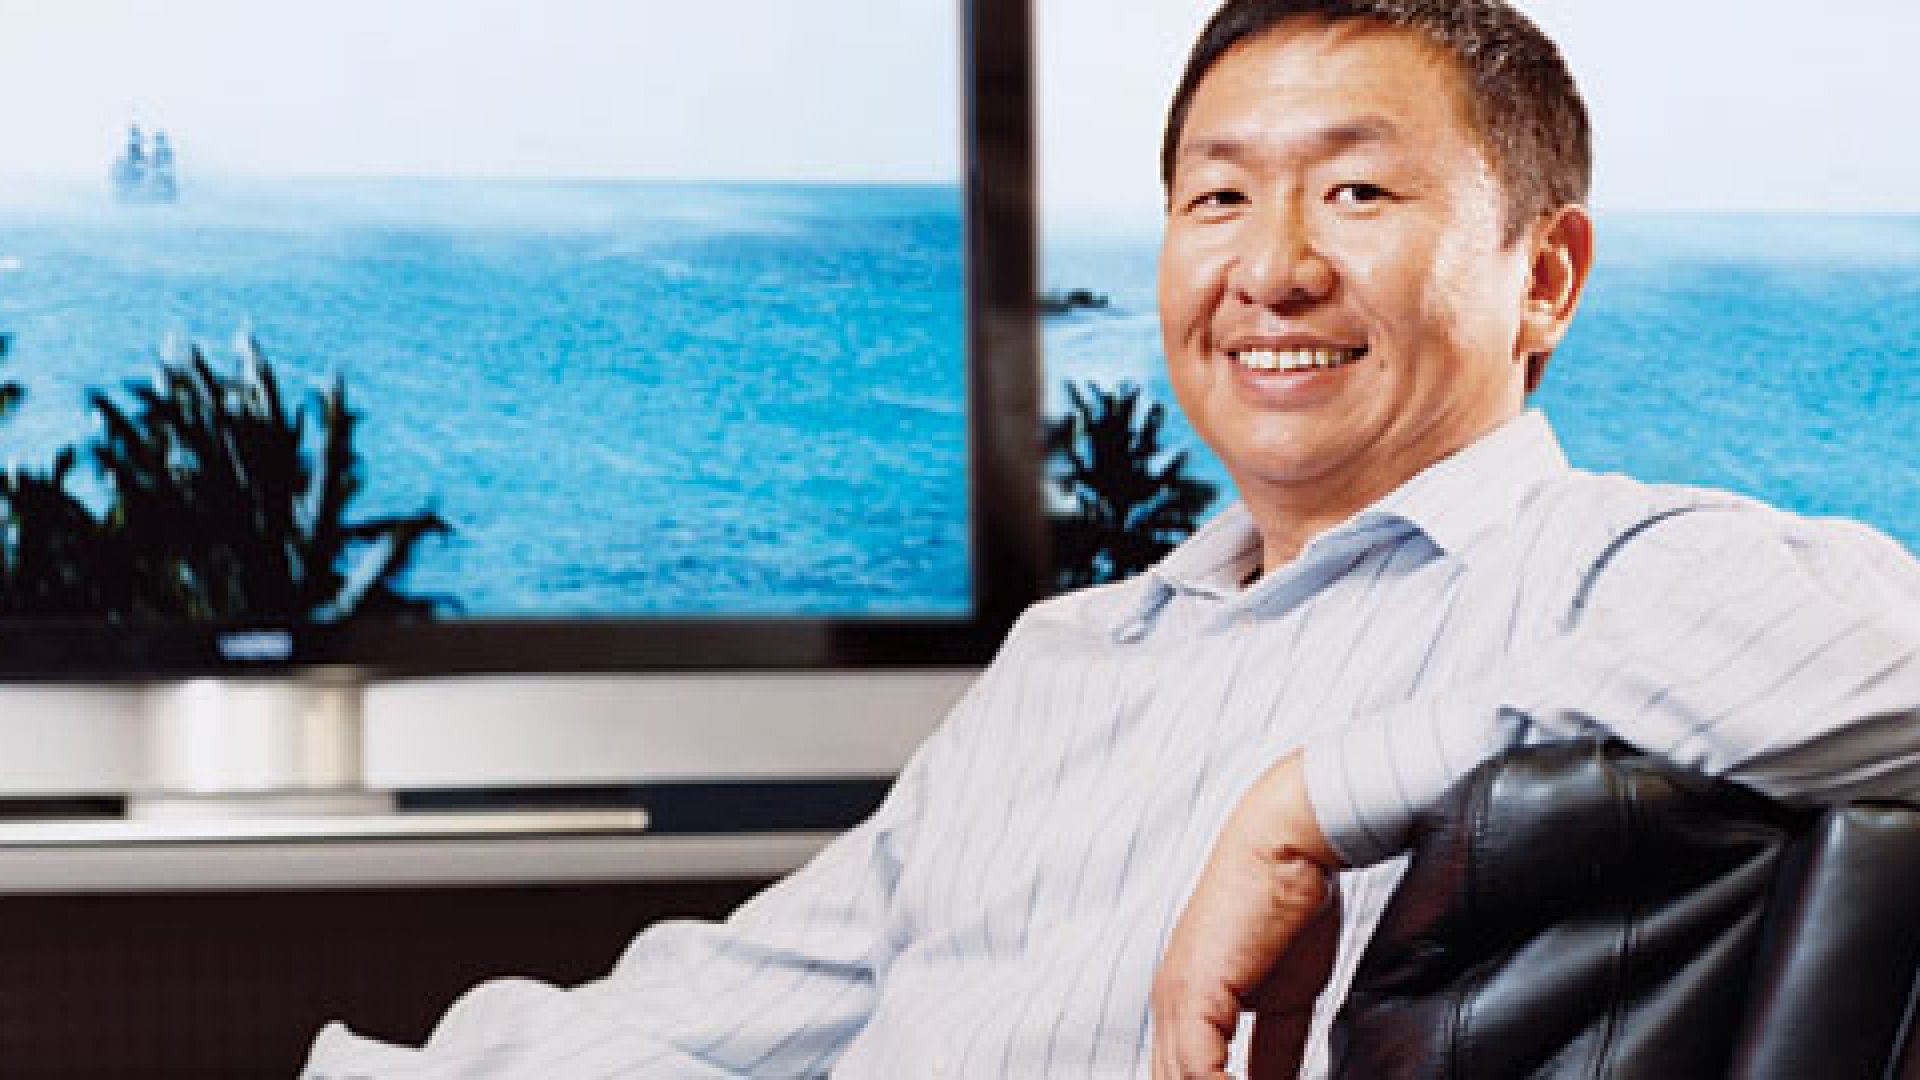 <strong>A SENSE OF CLARITY:</strong> When William Wang says it's not really about the money, believe it. That said, Vizio will sell $2 billion worth of TVs this year.